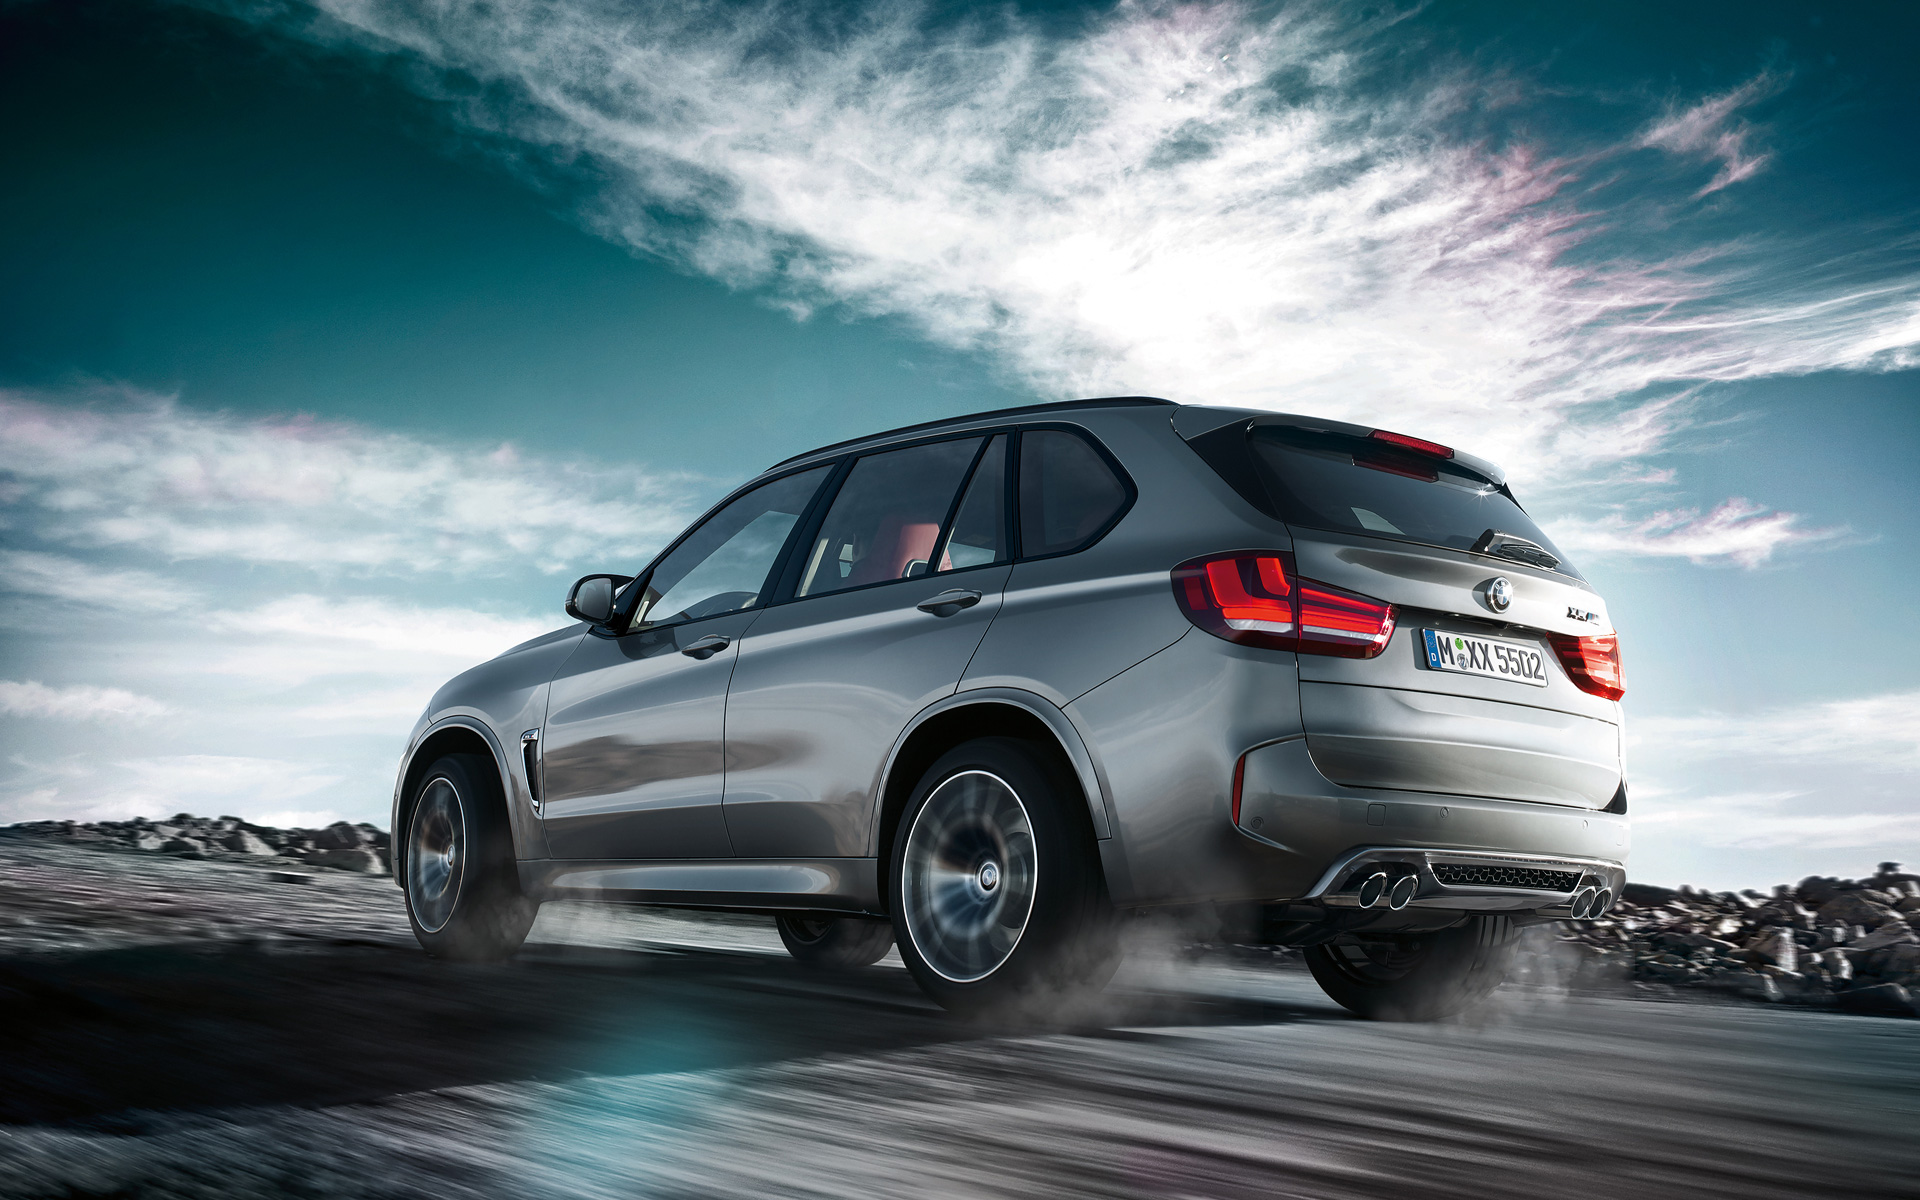 BMW X5 M Side View outdoor driving